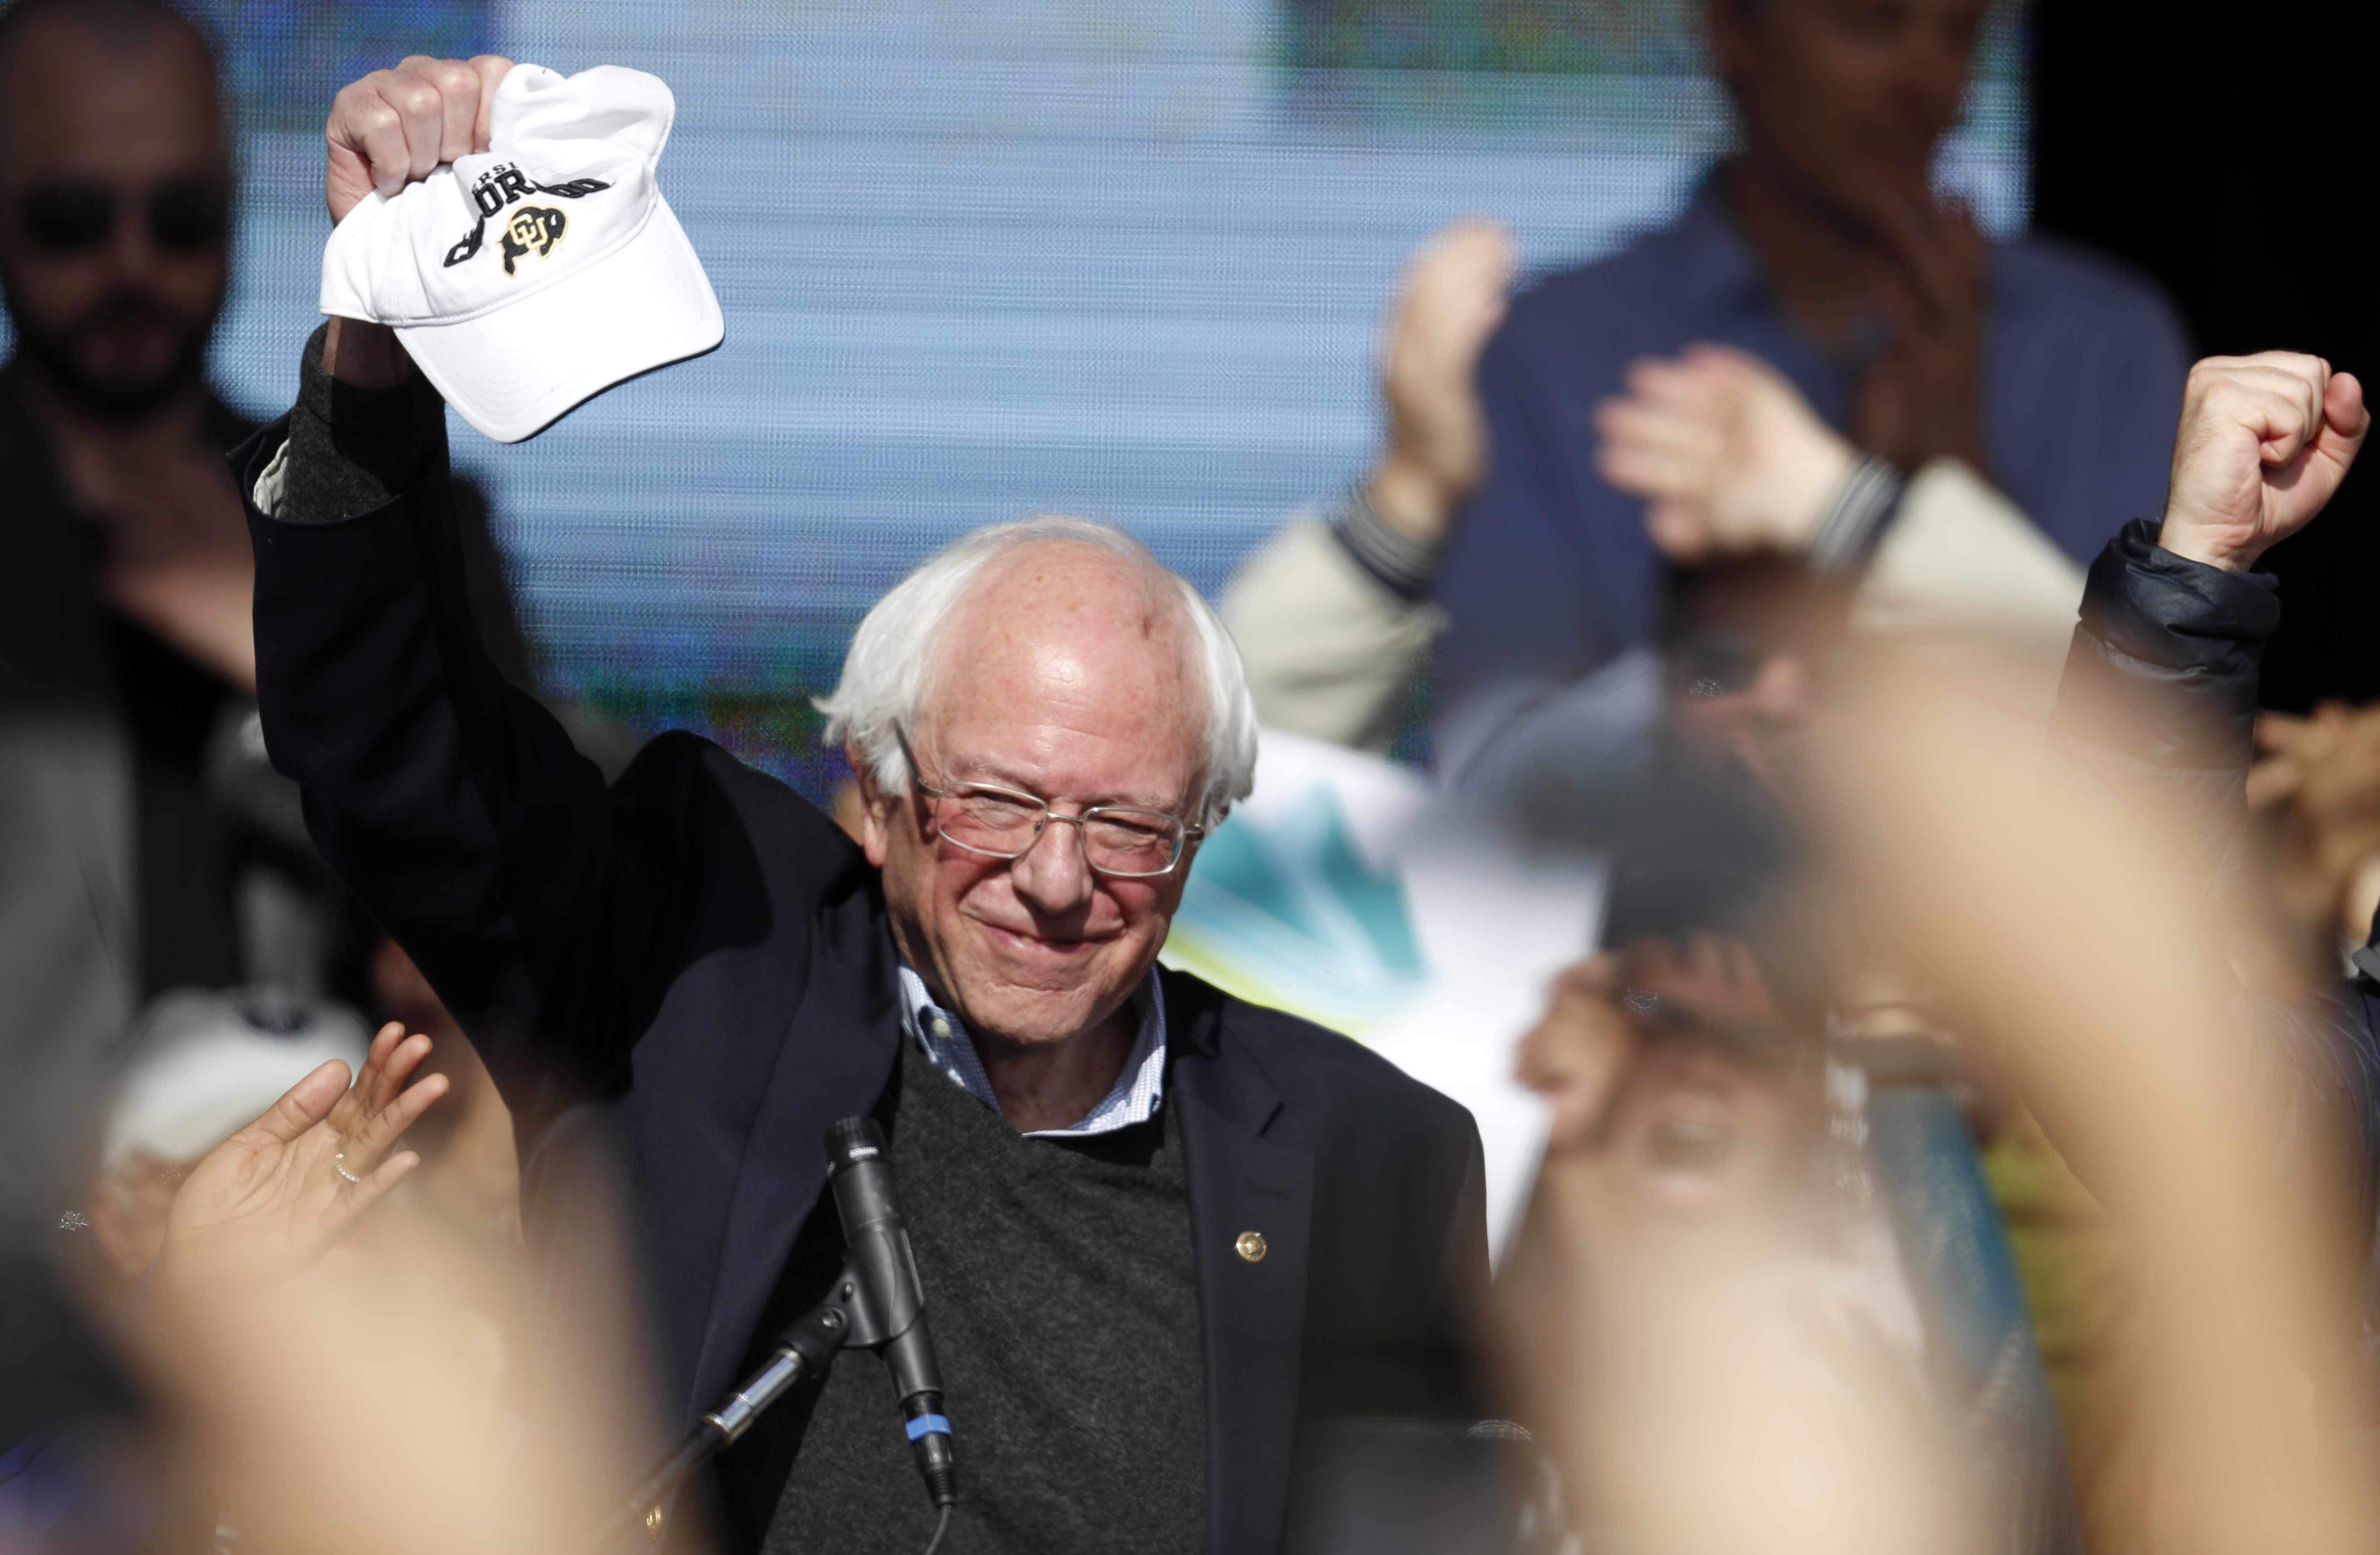 <p>U.S. Senator Bernie Sanders hoists a CU Buffs hatduring a rally with young voters on the campus of the University of Colorado Wednesday, Oct. 24, 2018, in Boulder, Colo.</p>